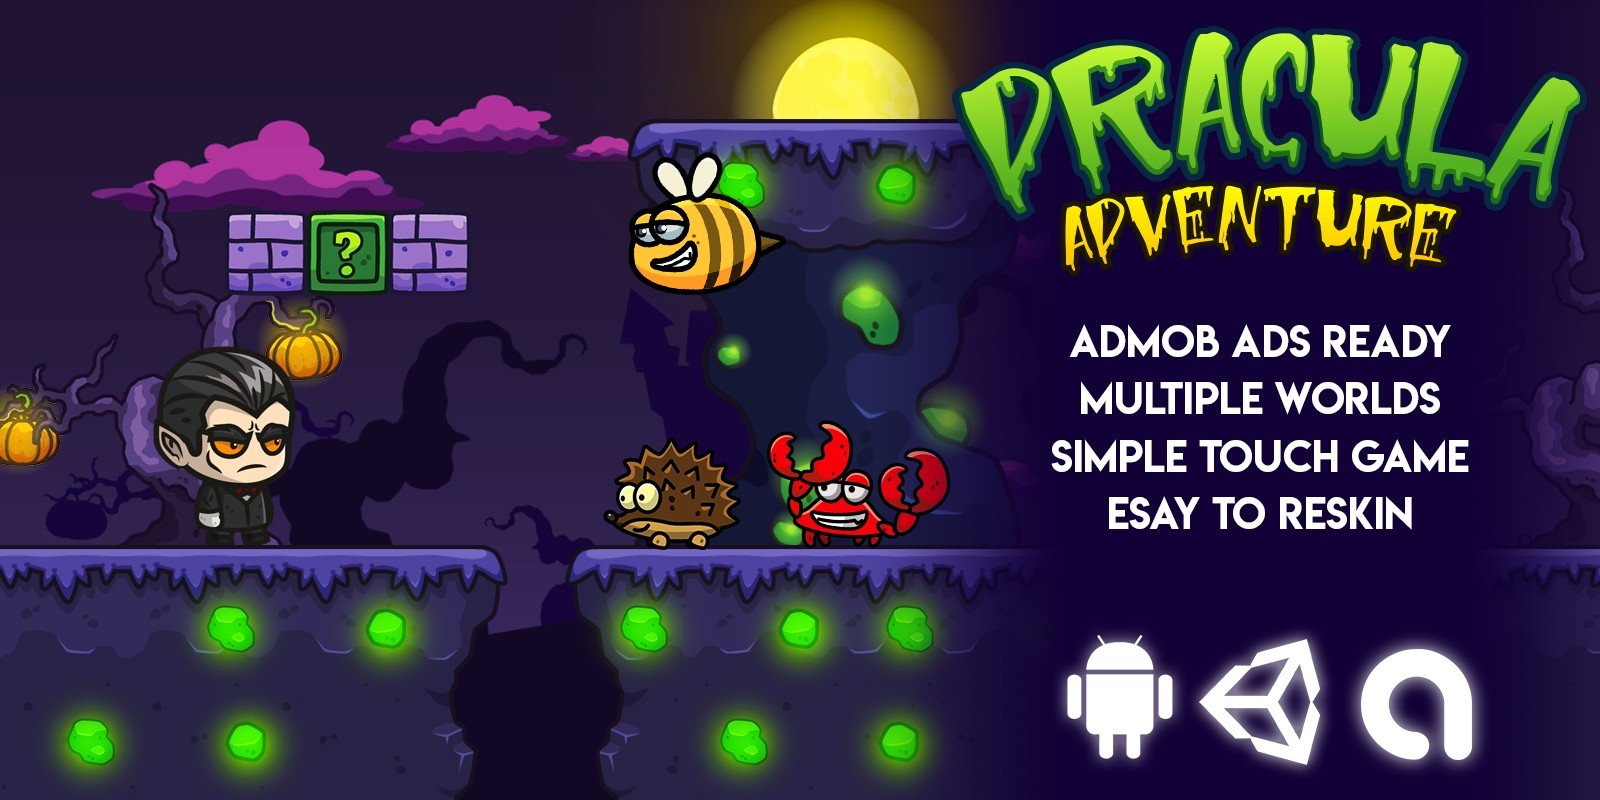 Dracula Adventure Complete Unity Game